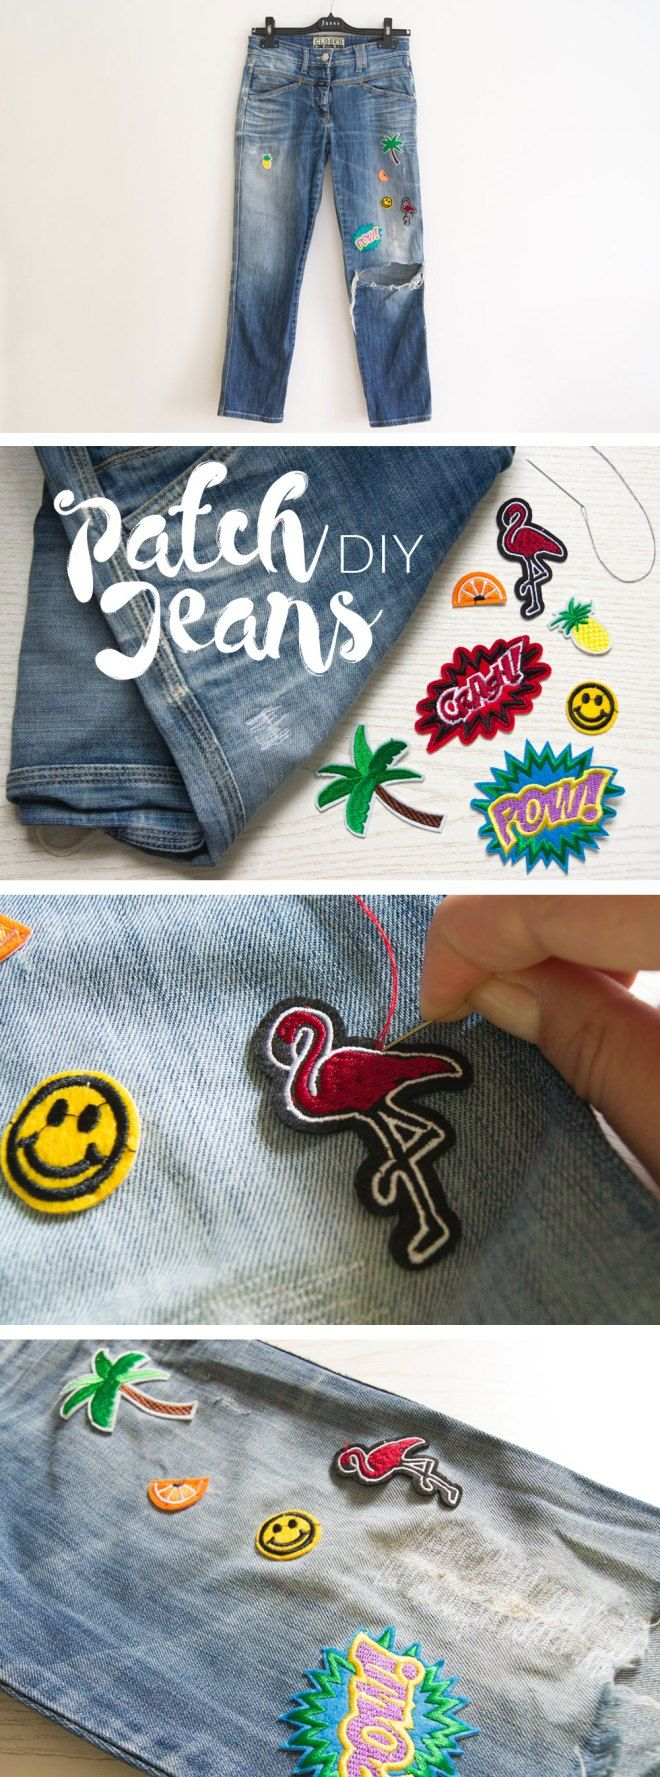 DIY Patch Jeans - yellowgirl